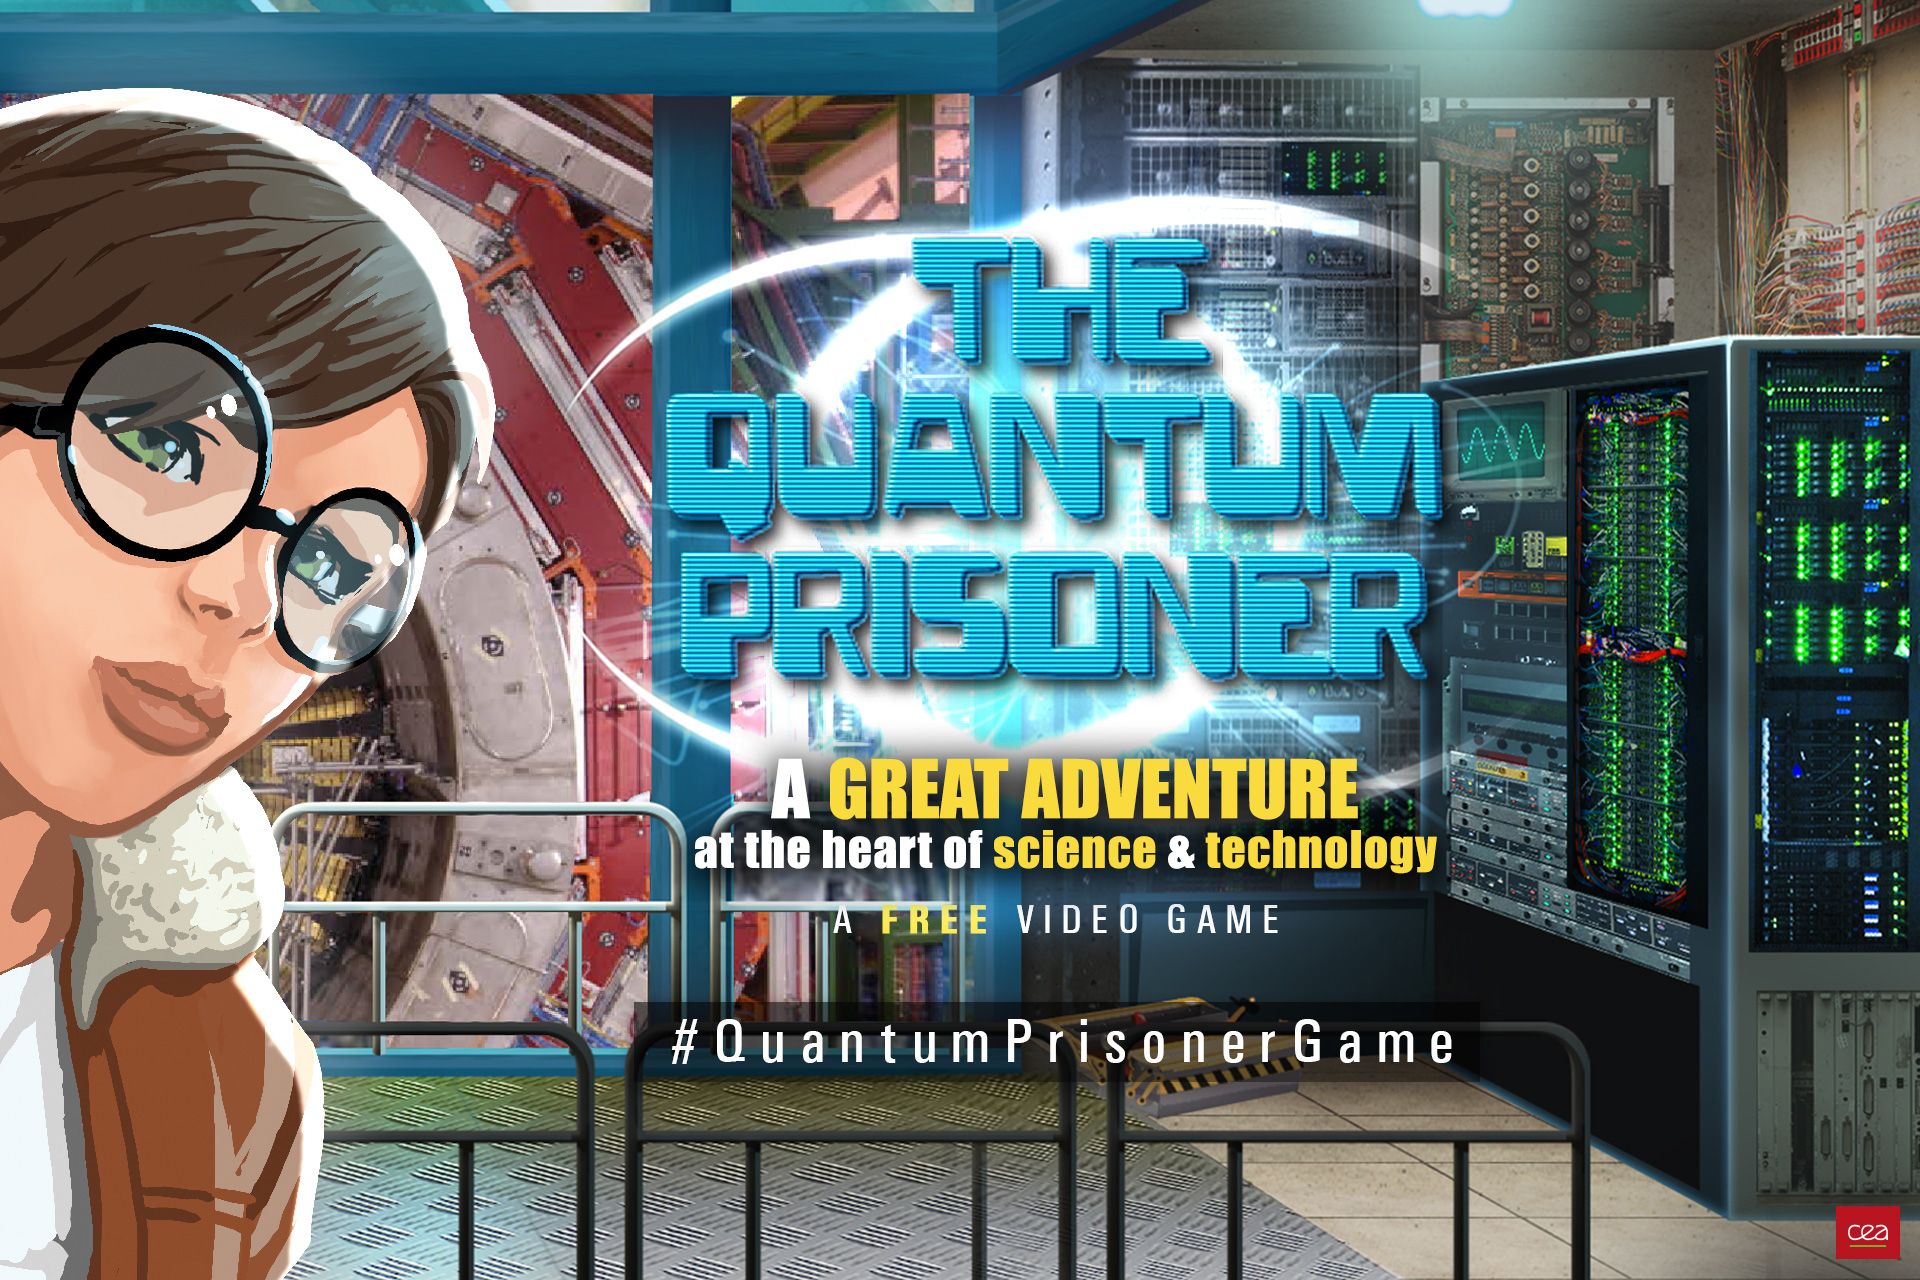 Launch of the English version of The Quantum Prisoner video game